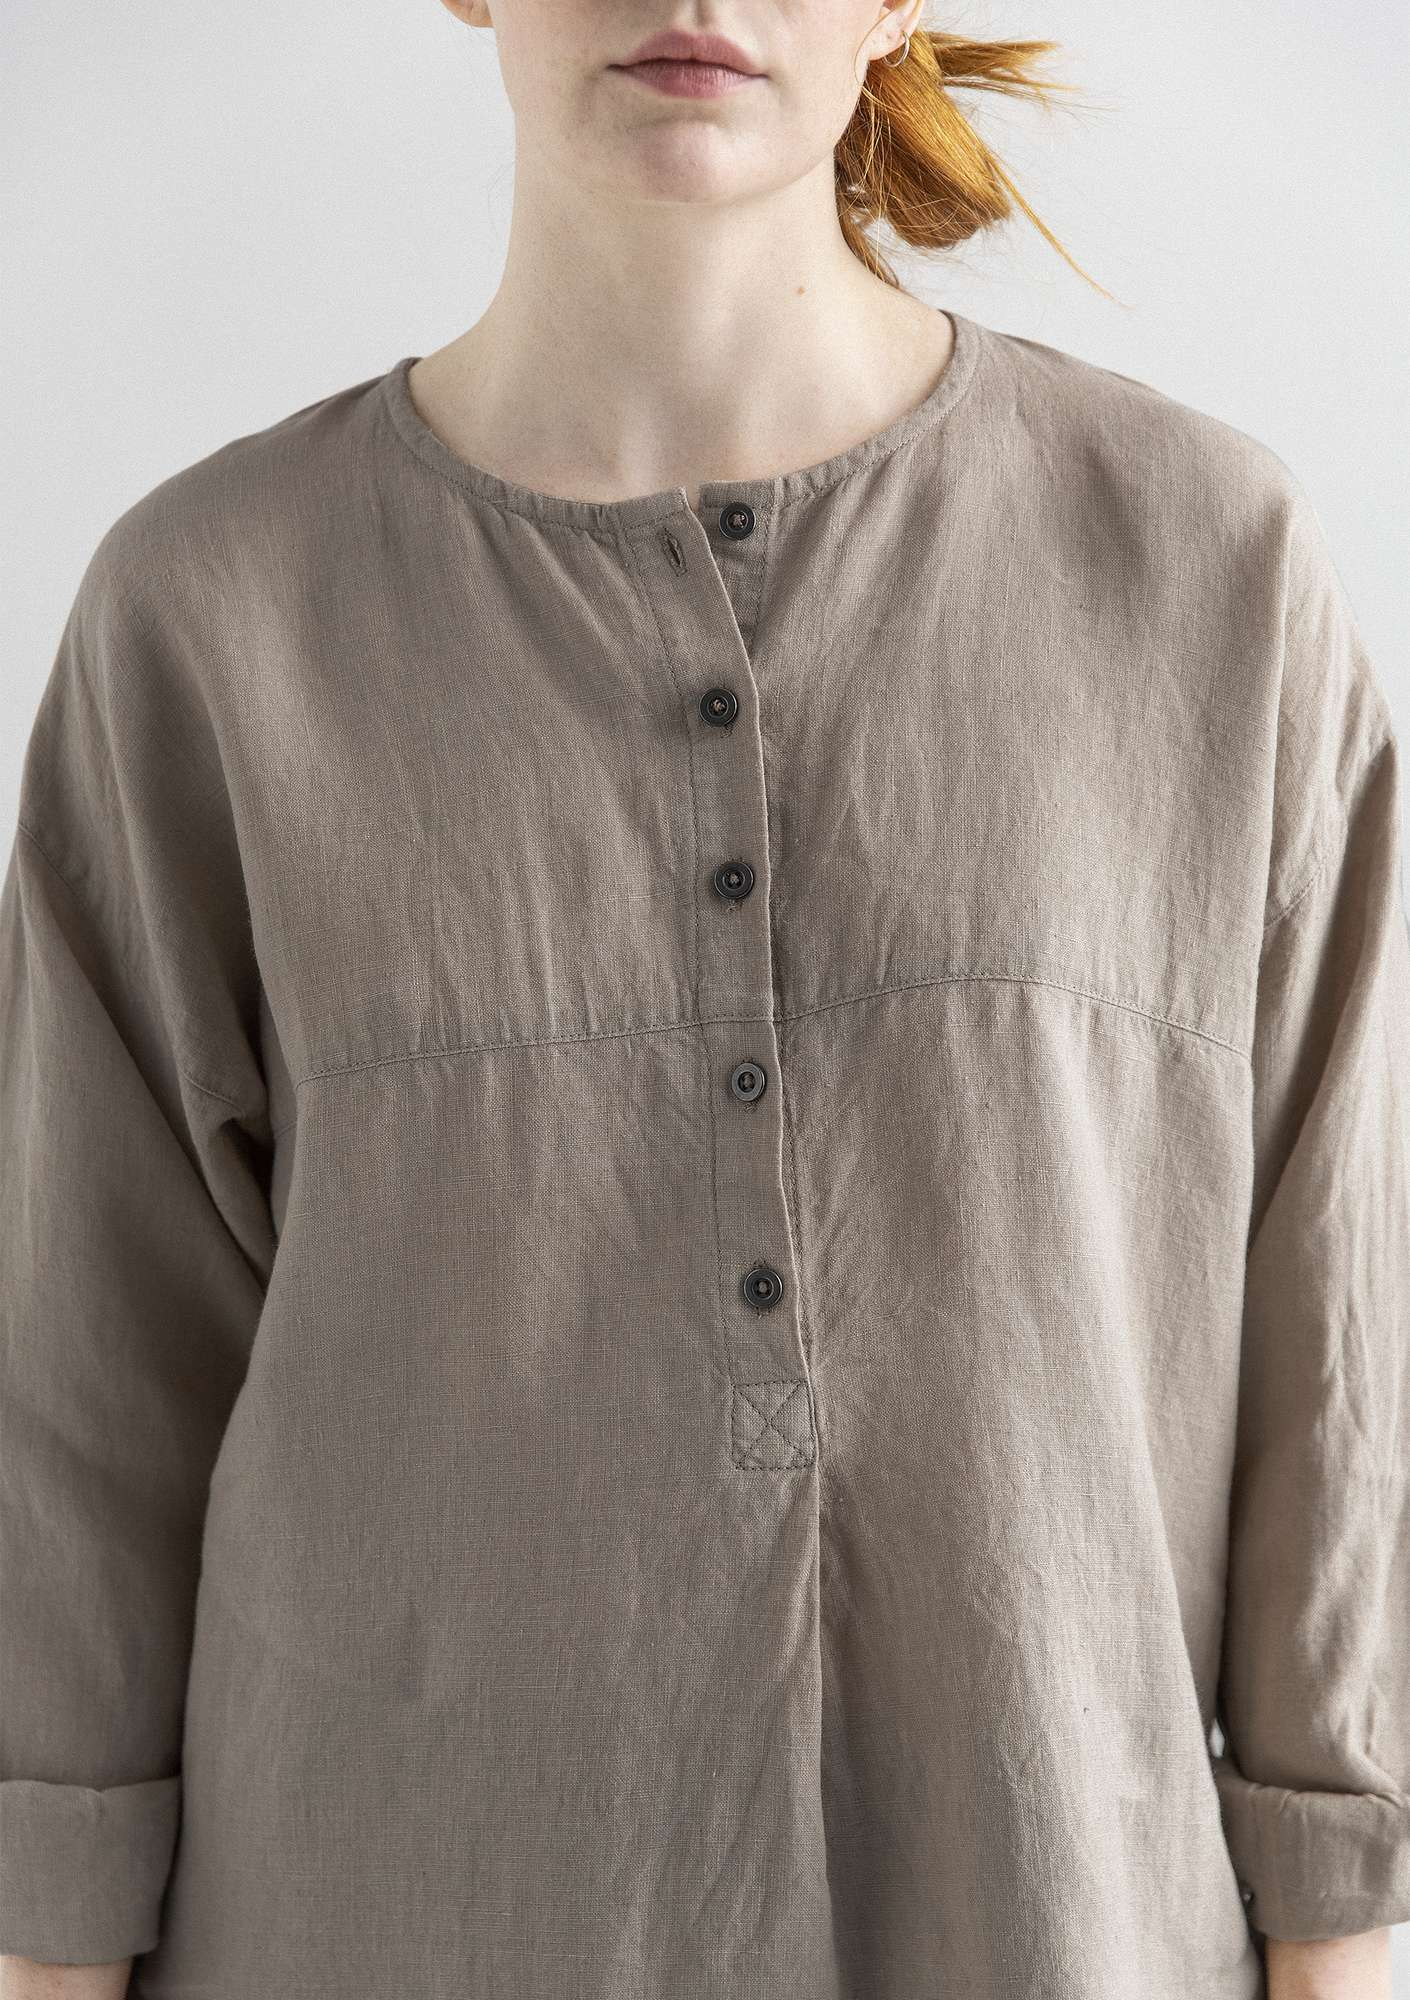 NICE shirt in linen dark nature